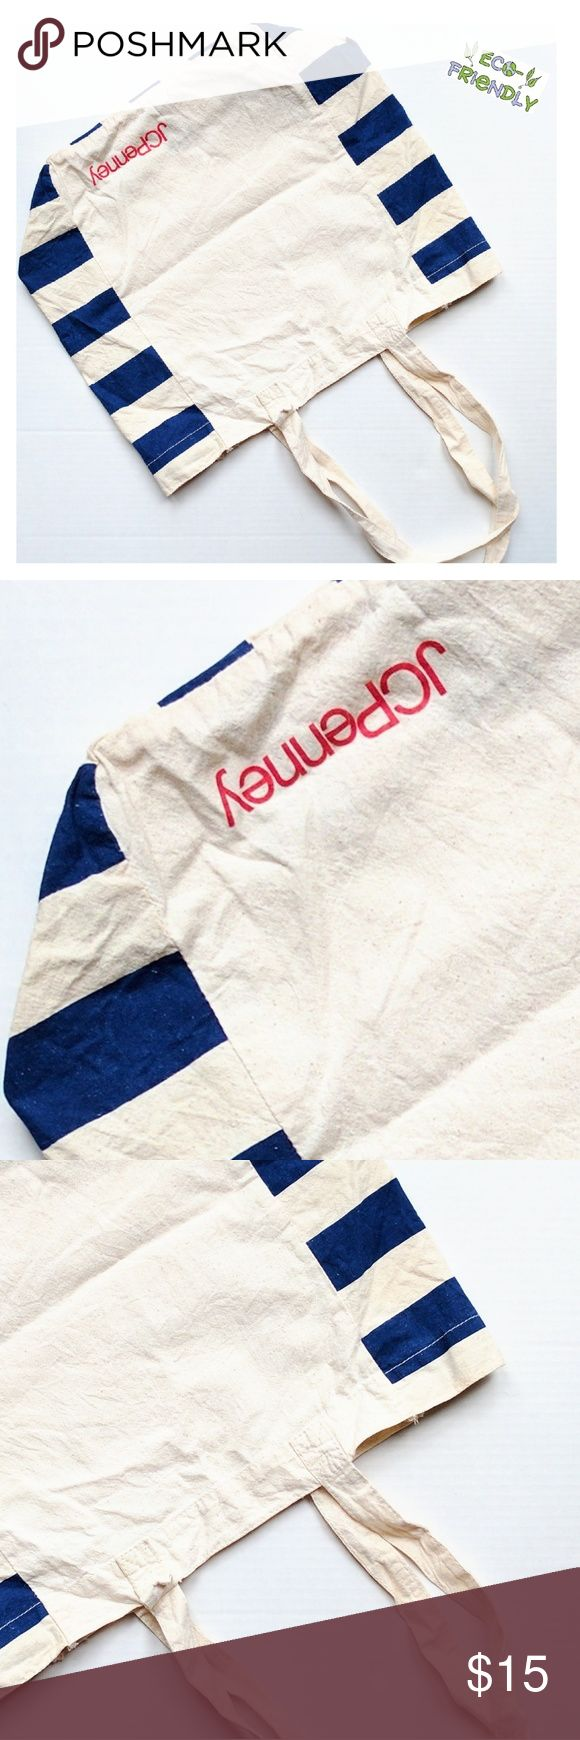 ♻️ eco-friendly patriotic tote * Tote * Lightweight * Eco-Friendly * Cream / Beige  * Blue Nautical Stripe Sides * Red JcPenney Logo * BRAND NEW - FLAWLESS * FROM A PRIVATE VIP PR EVENT  * Summer * Beach * Shopping * Errands * Carry All * Cotton  * Organic * Vacation * Packable * Bags Totes